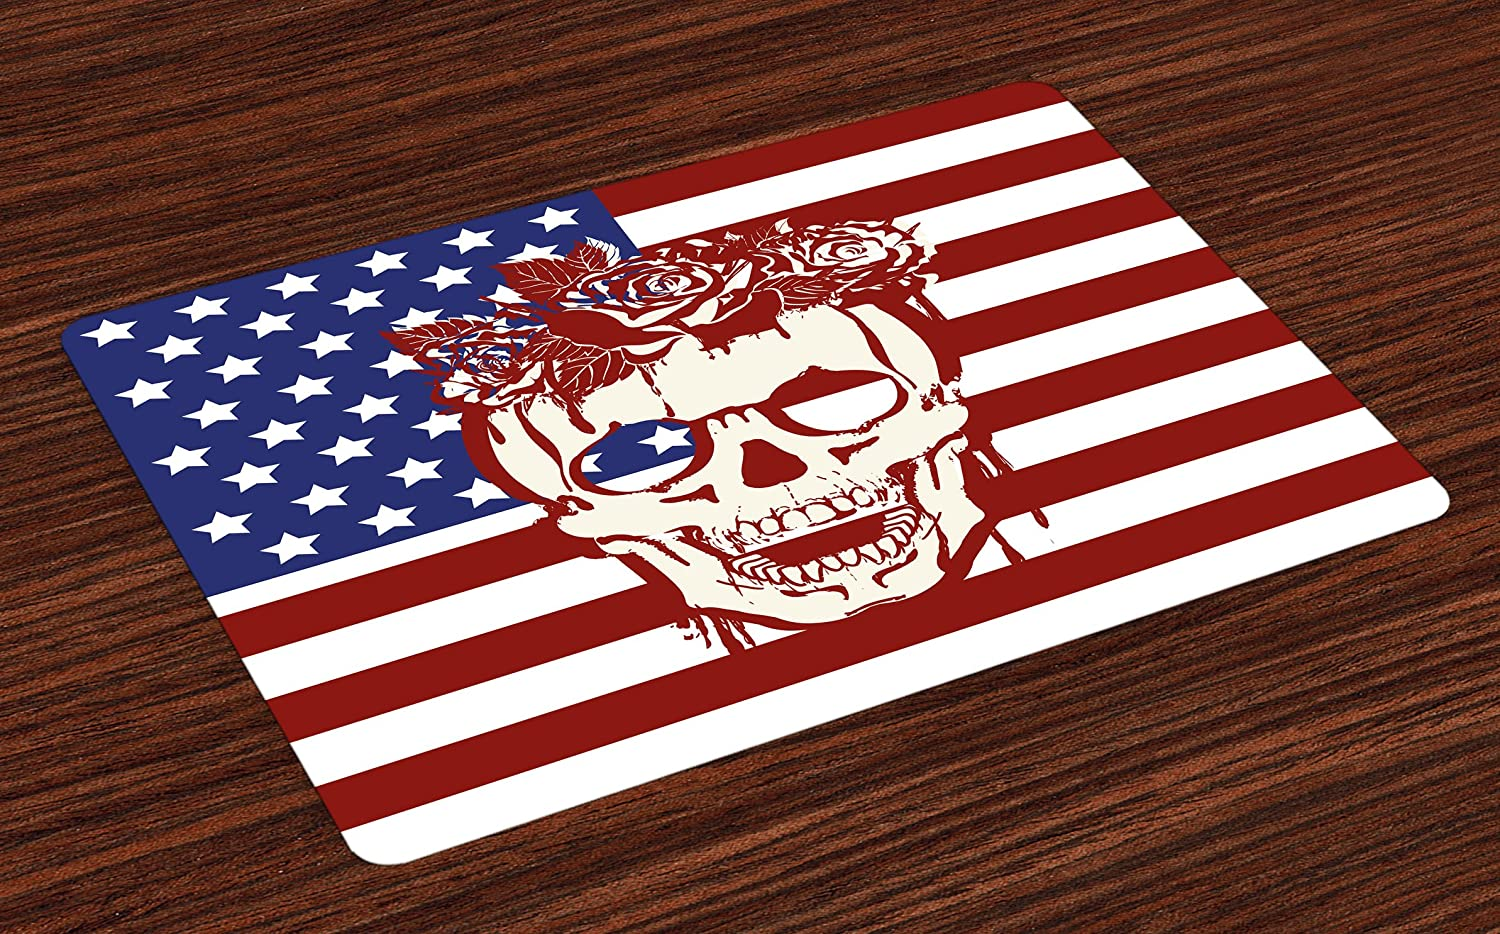 Ambesonne Skull Place Mats Set of 4, Dead Human Head with a Floral Wreath USA American Stars Humor Illustration, Washable Fabric Placemats for Dining Room Kitchen Table Decor, Red White